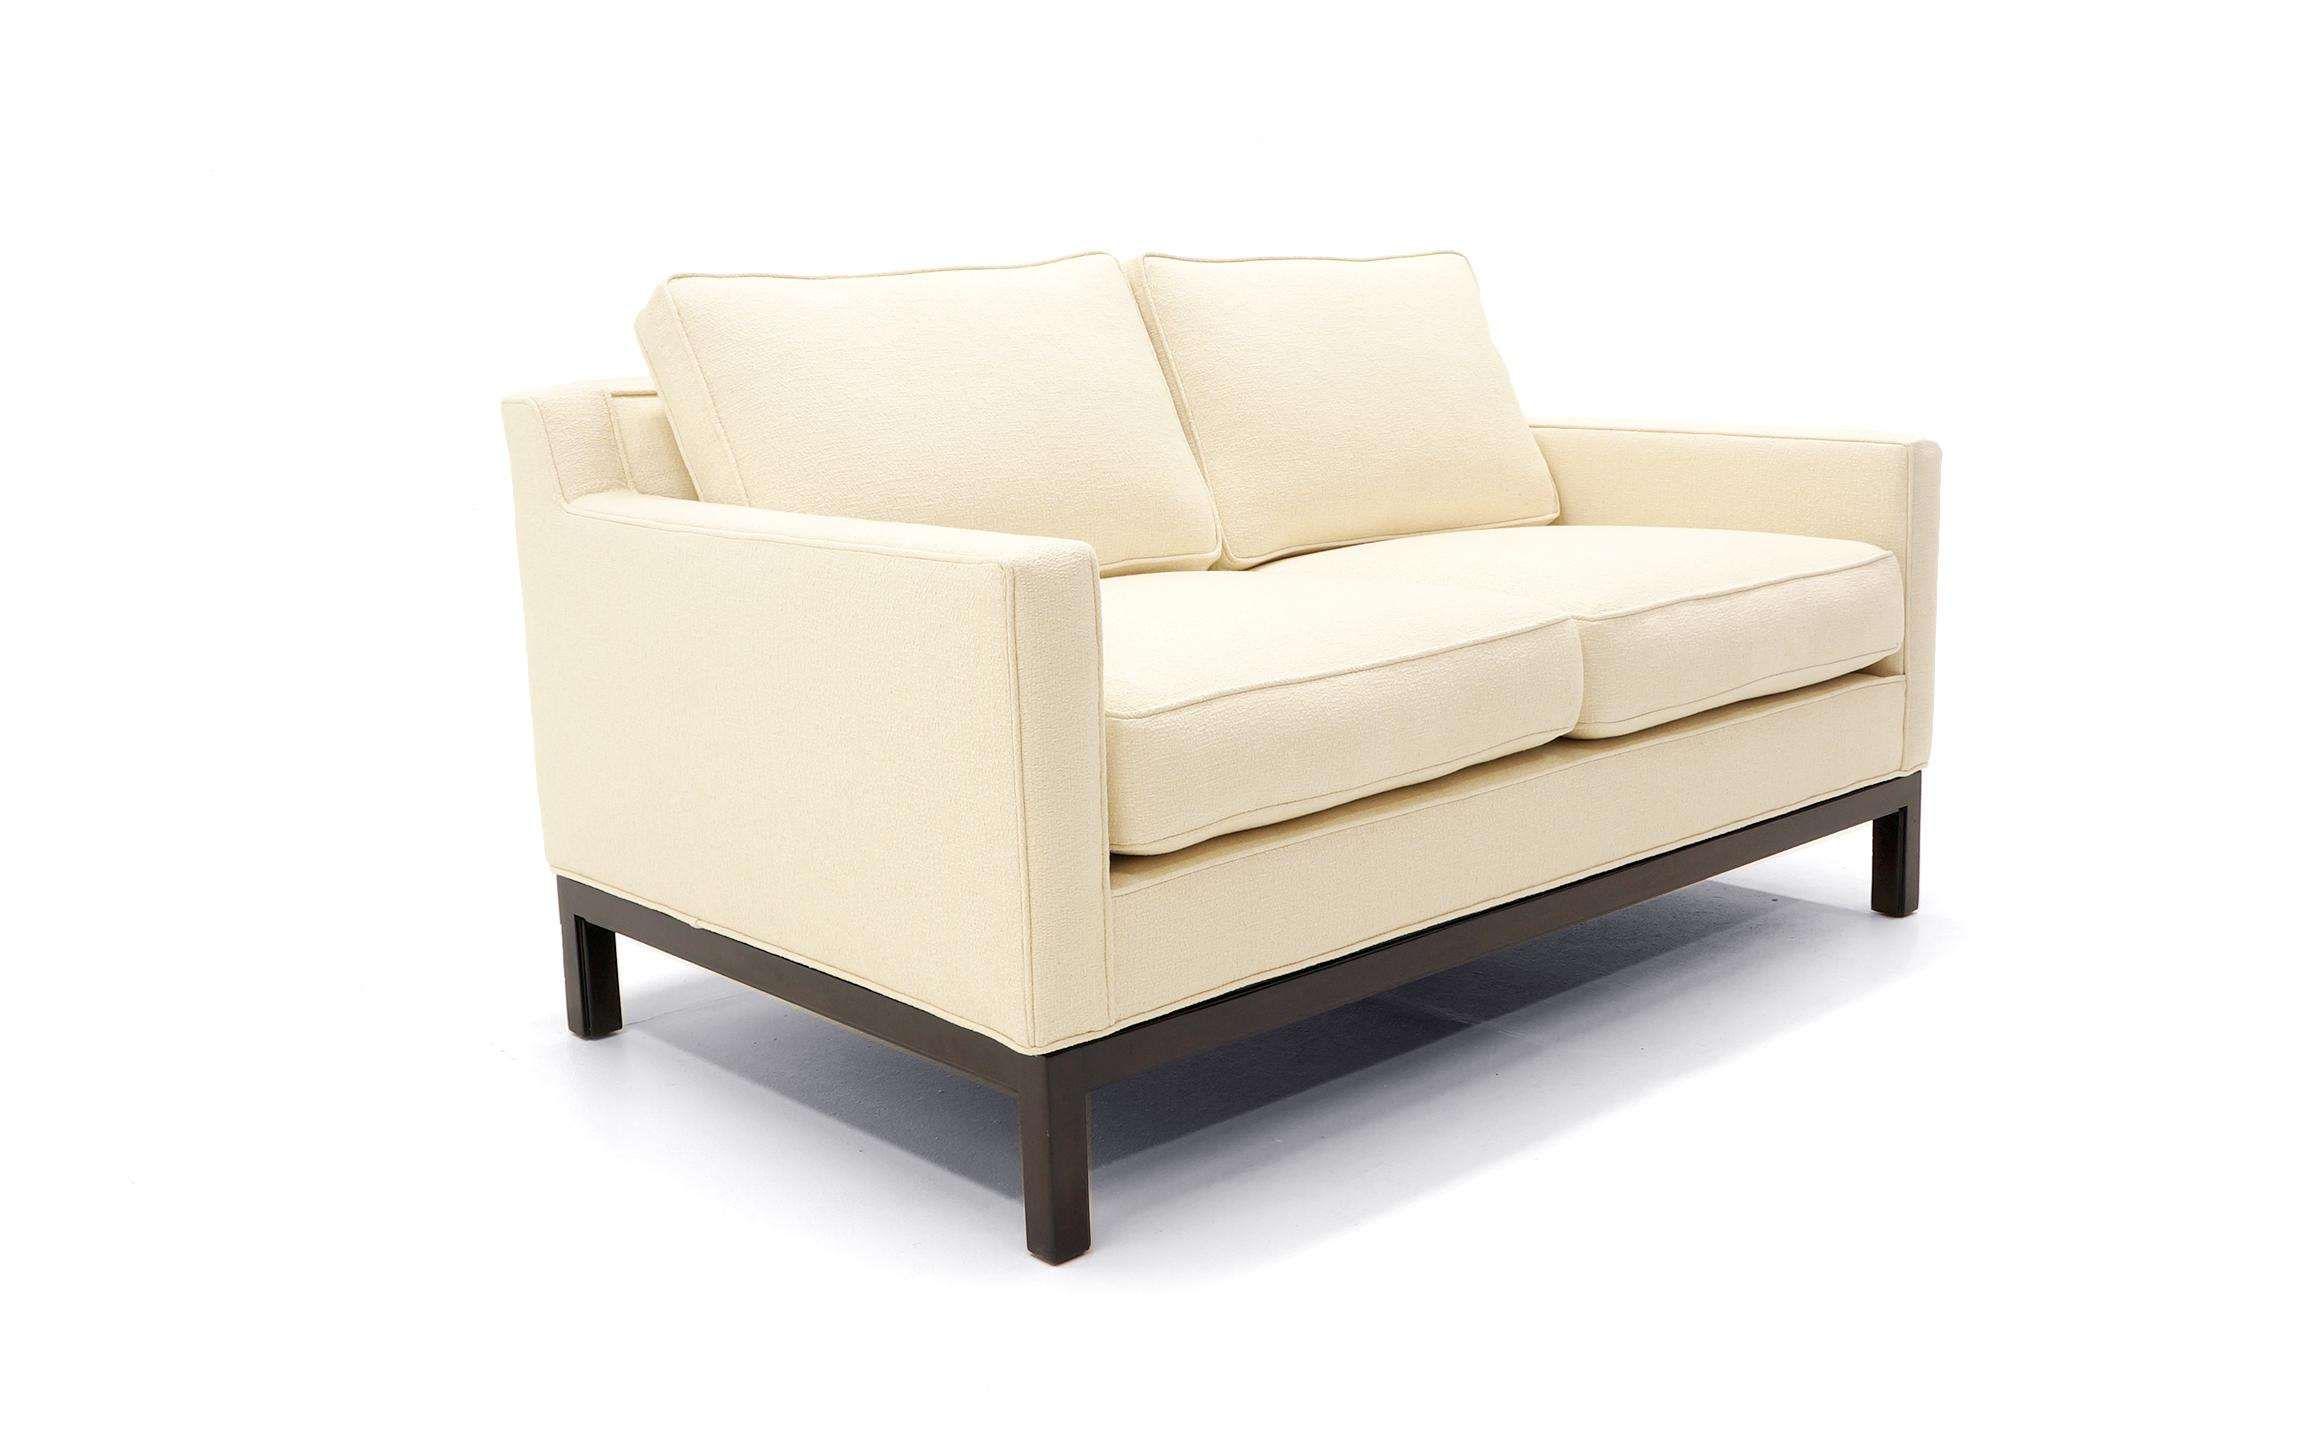 Lovely Edward Wormley for Dunbar Sofa and Loveseat  : 1c3316c6 667e 4f80 af87 8a98bef26601aspectfitampwidth640ampheight640 from www.decaso.com size 640 x 640 jpeg 19kB